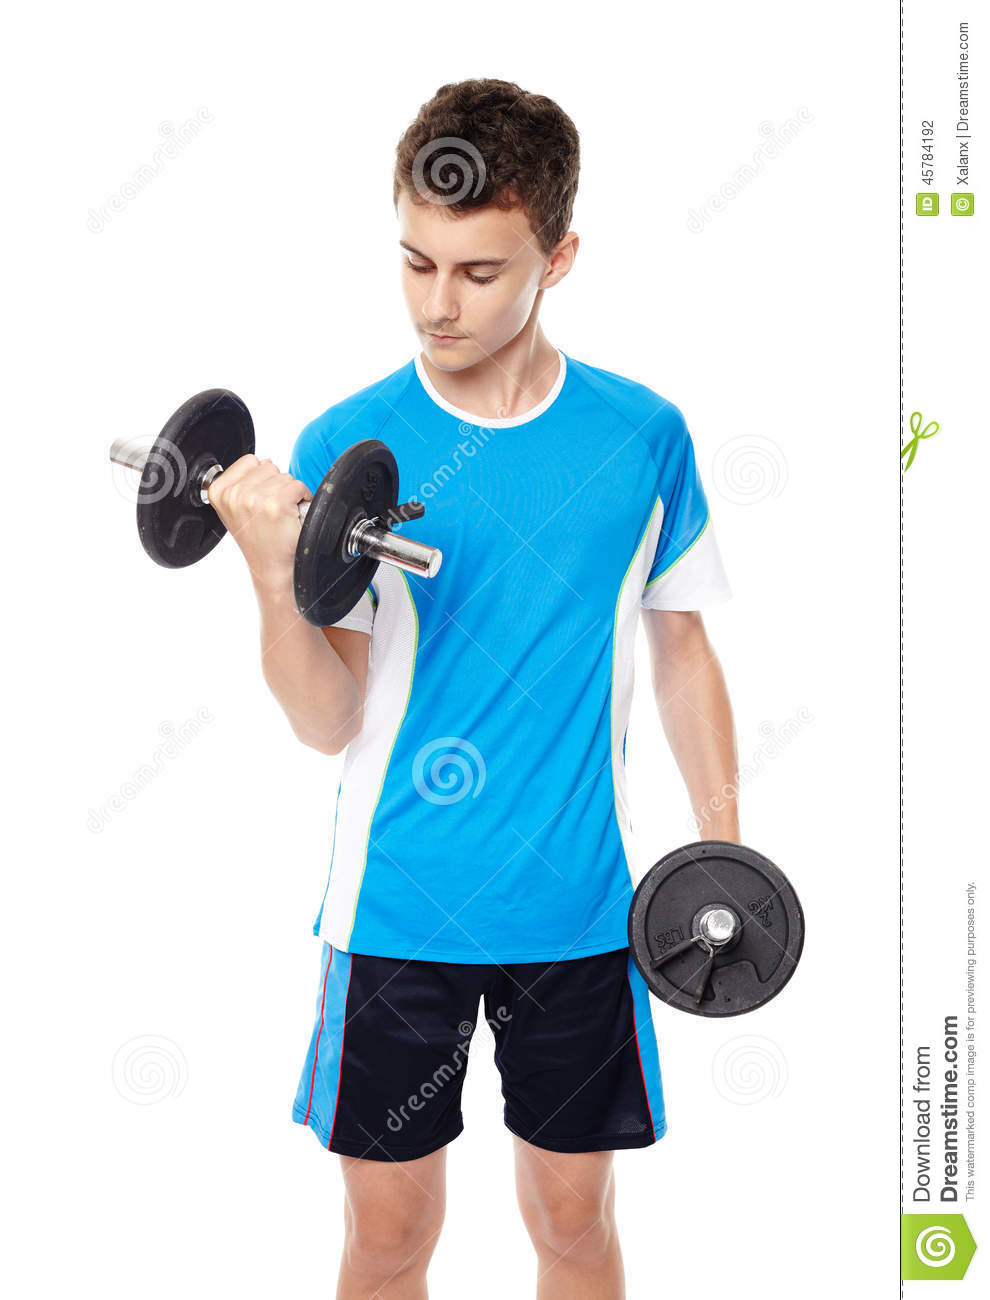 Teenage Boy Working Out Stock Photo - Image: 45784192